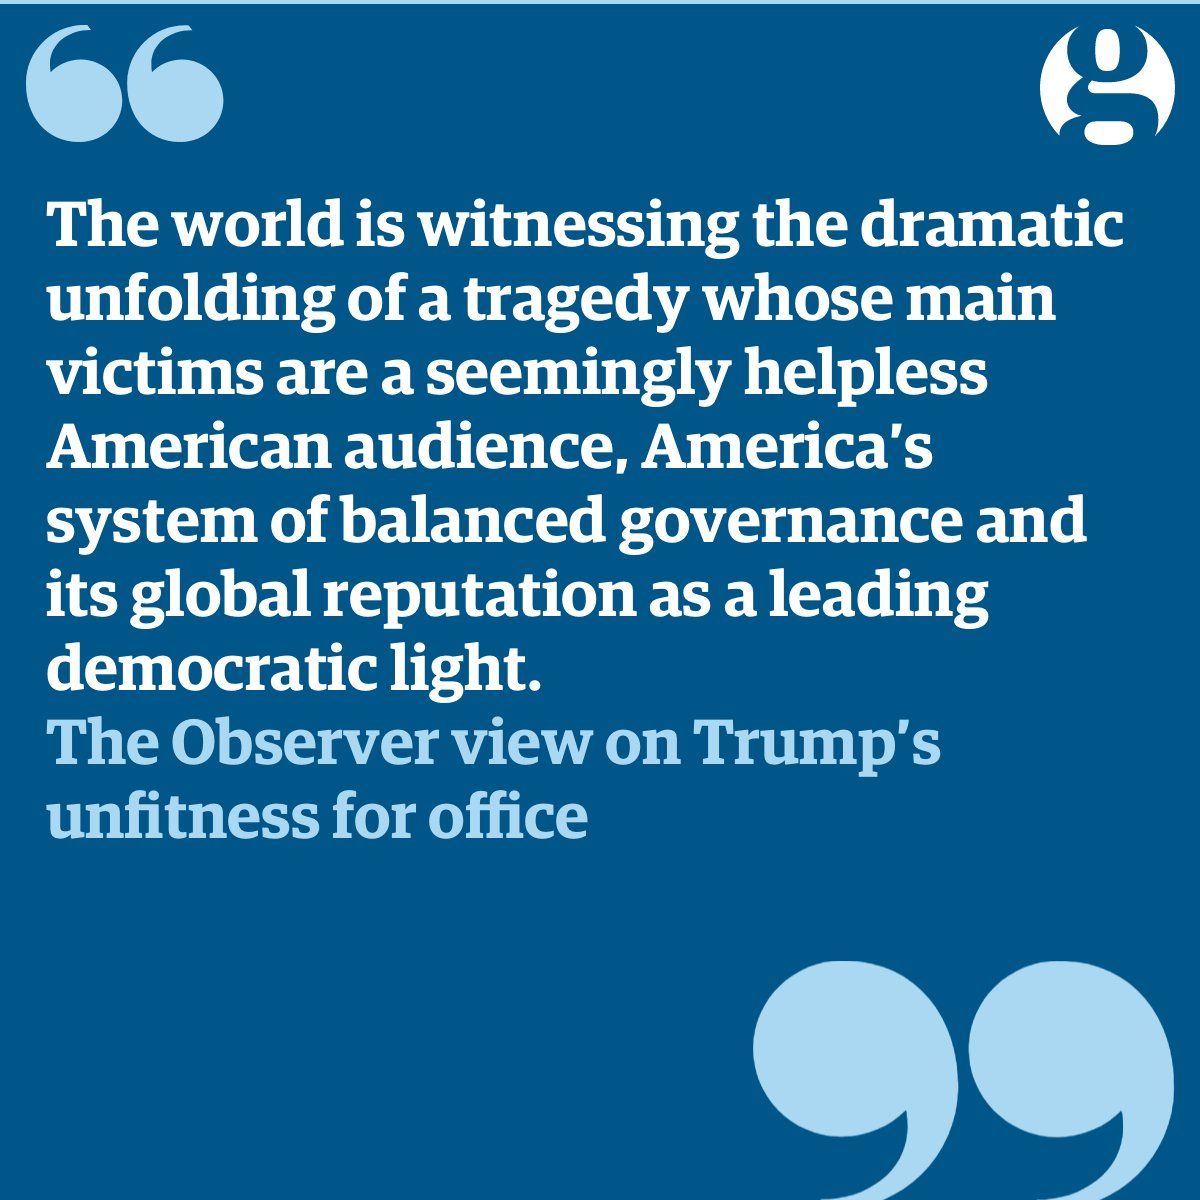 The Observer view on Donald Trump's unfitness for office | Observer editorial https://t.co/1LXm9pvLSw